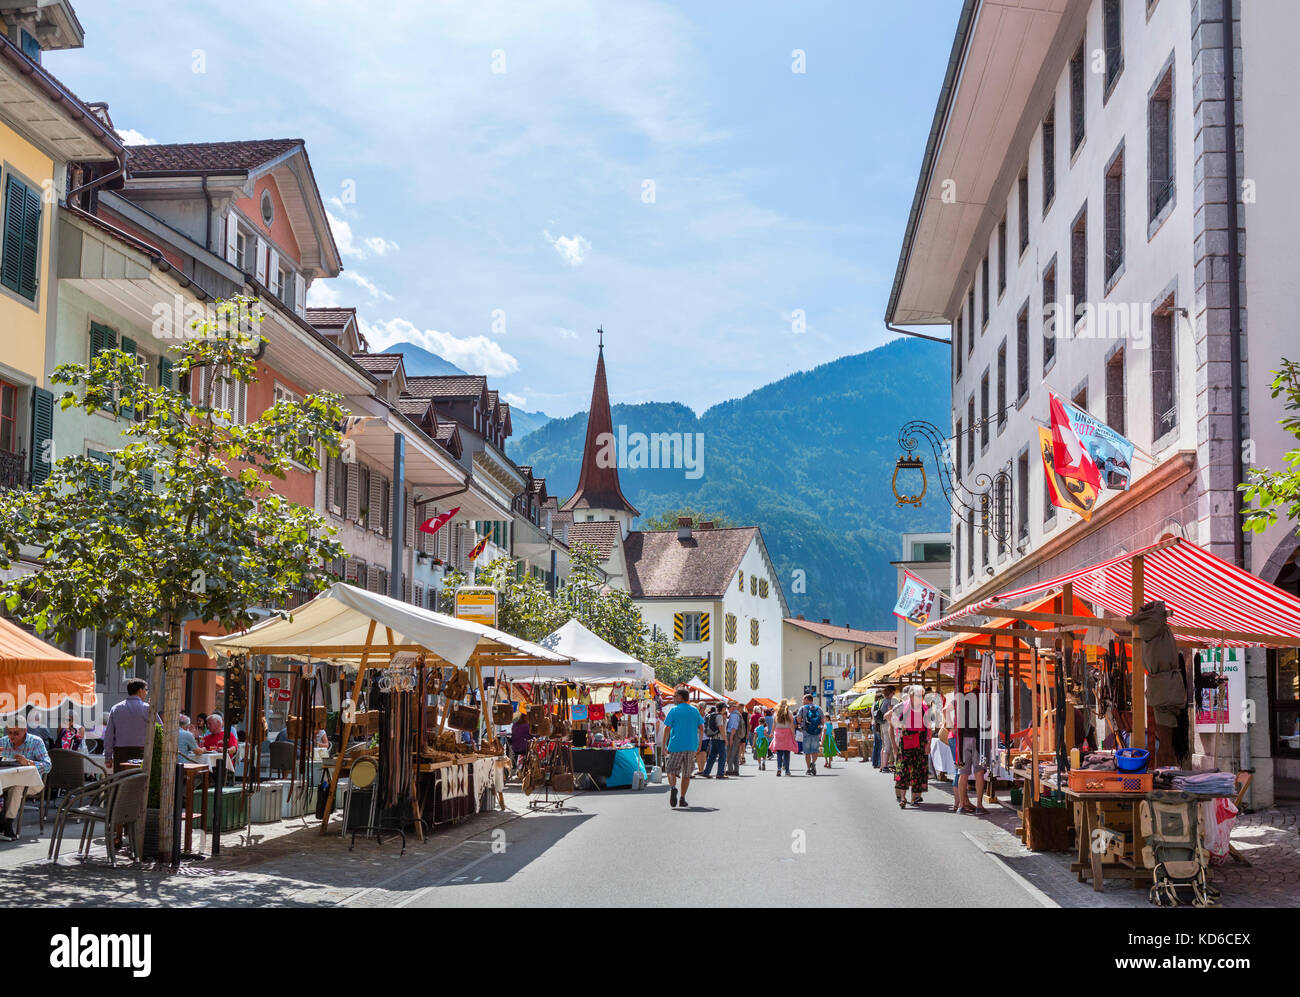 Market in the Market Square of the old town of Unterseen, Interlaken, Switzerland - Stock Image